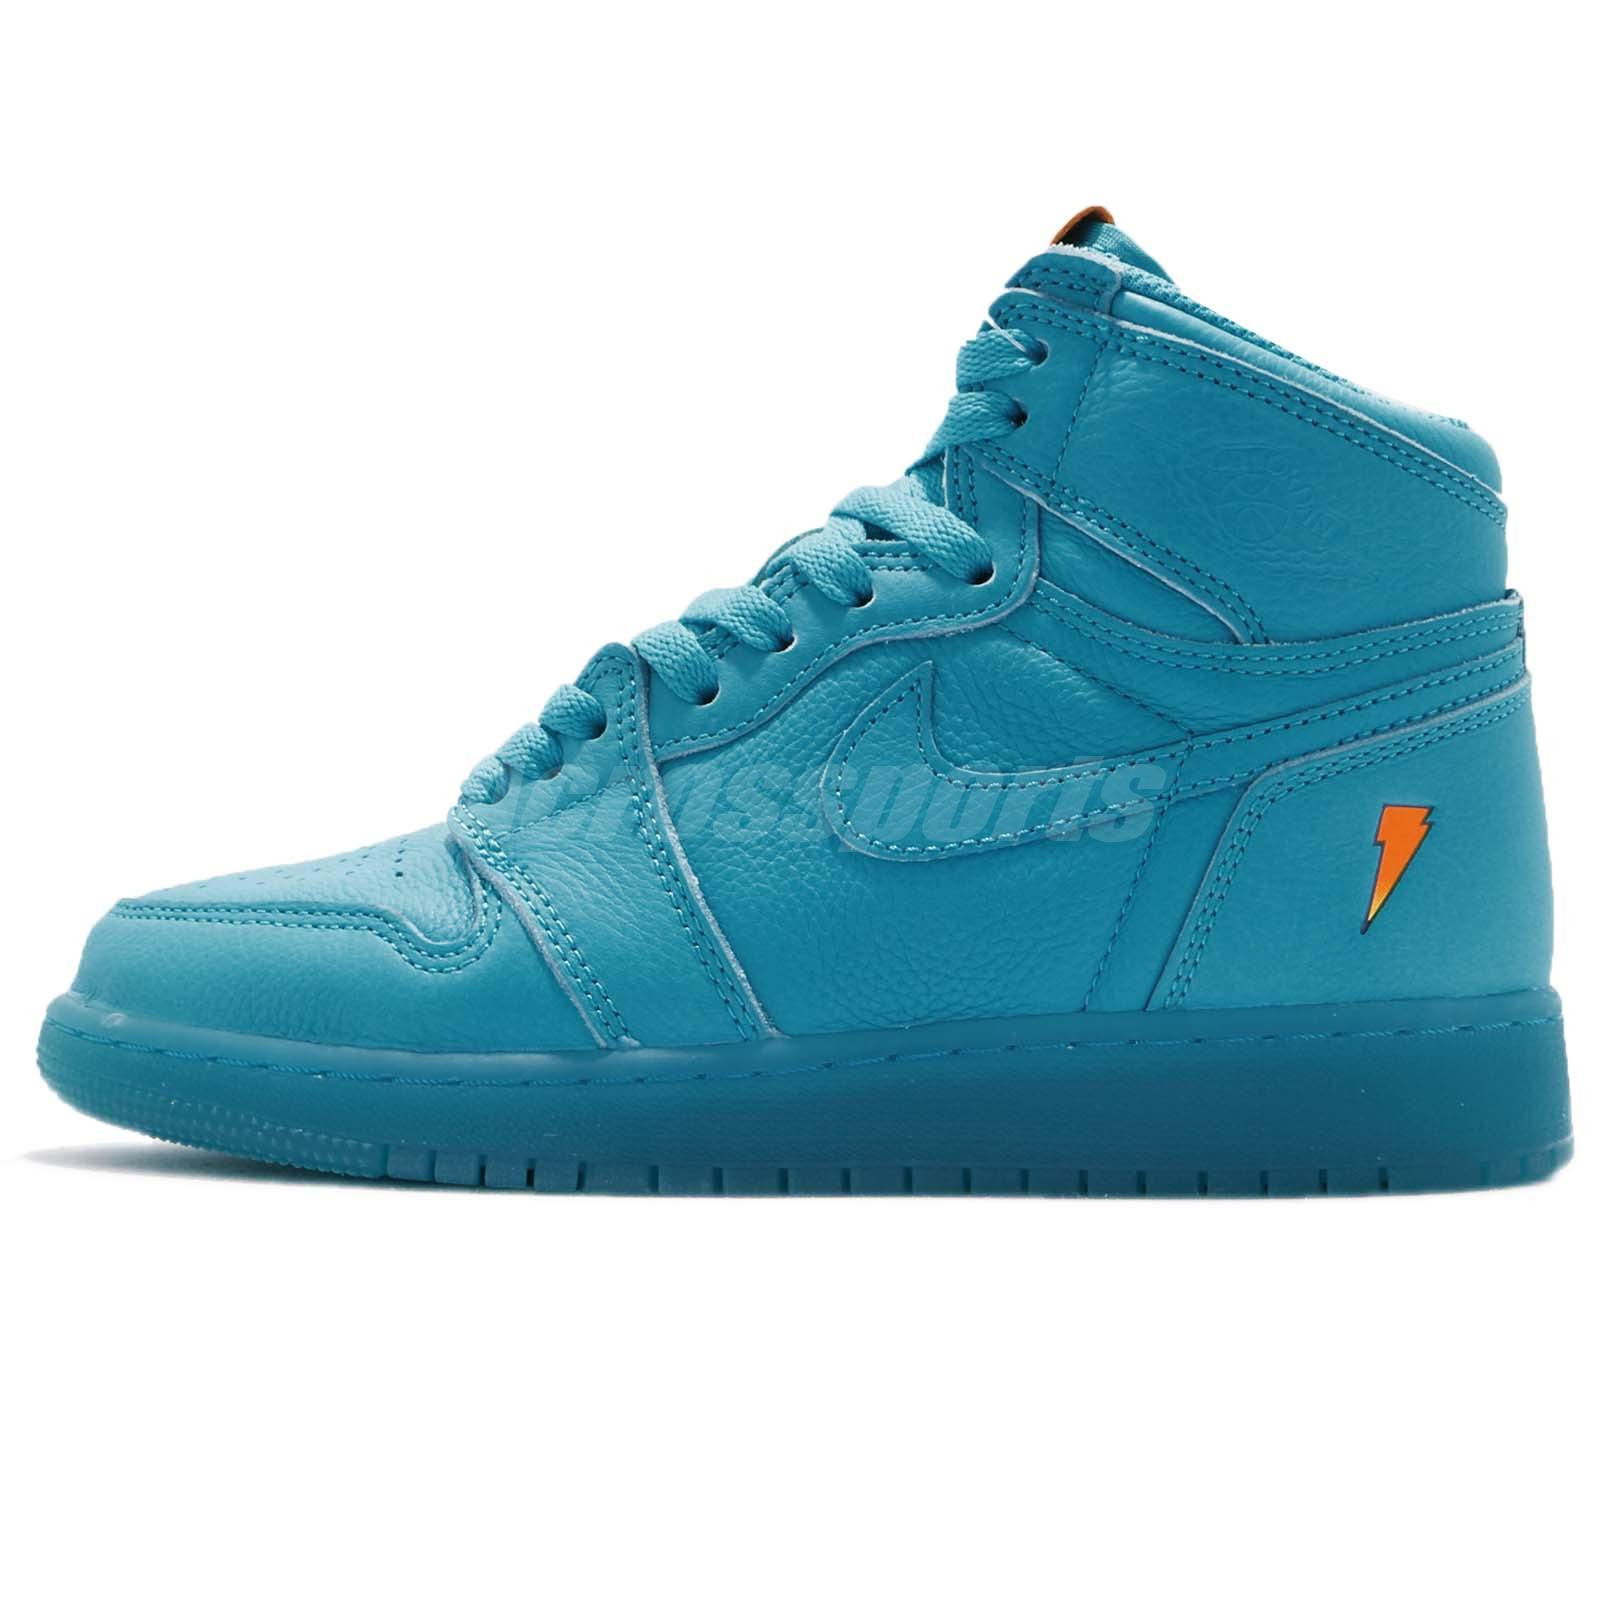 37f4f399f39239 Details about Nike Air Jordan 1 RET Hi OG G8RD BG Gatorade Blue Lagoon Kid  Youth AJ6000-455